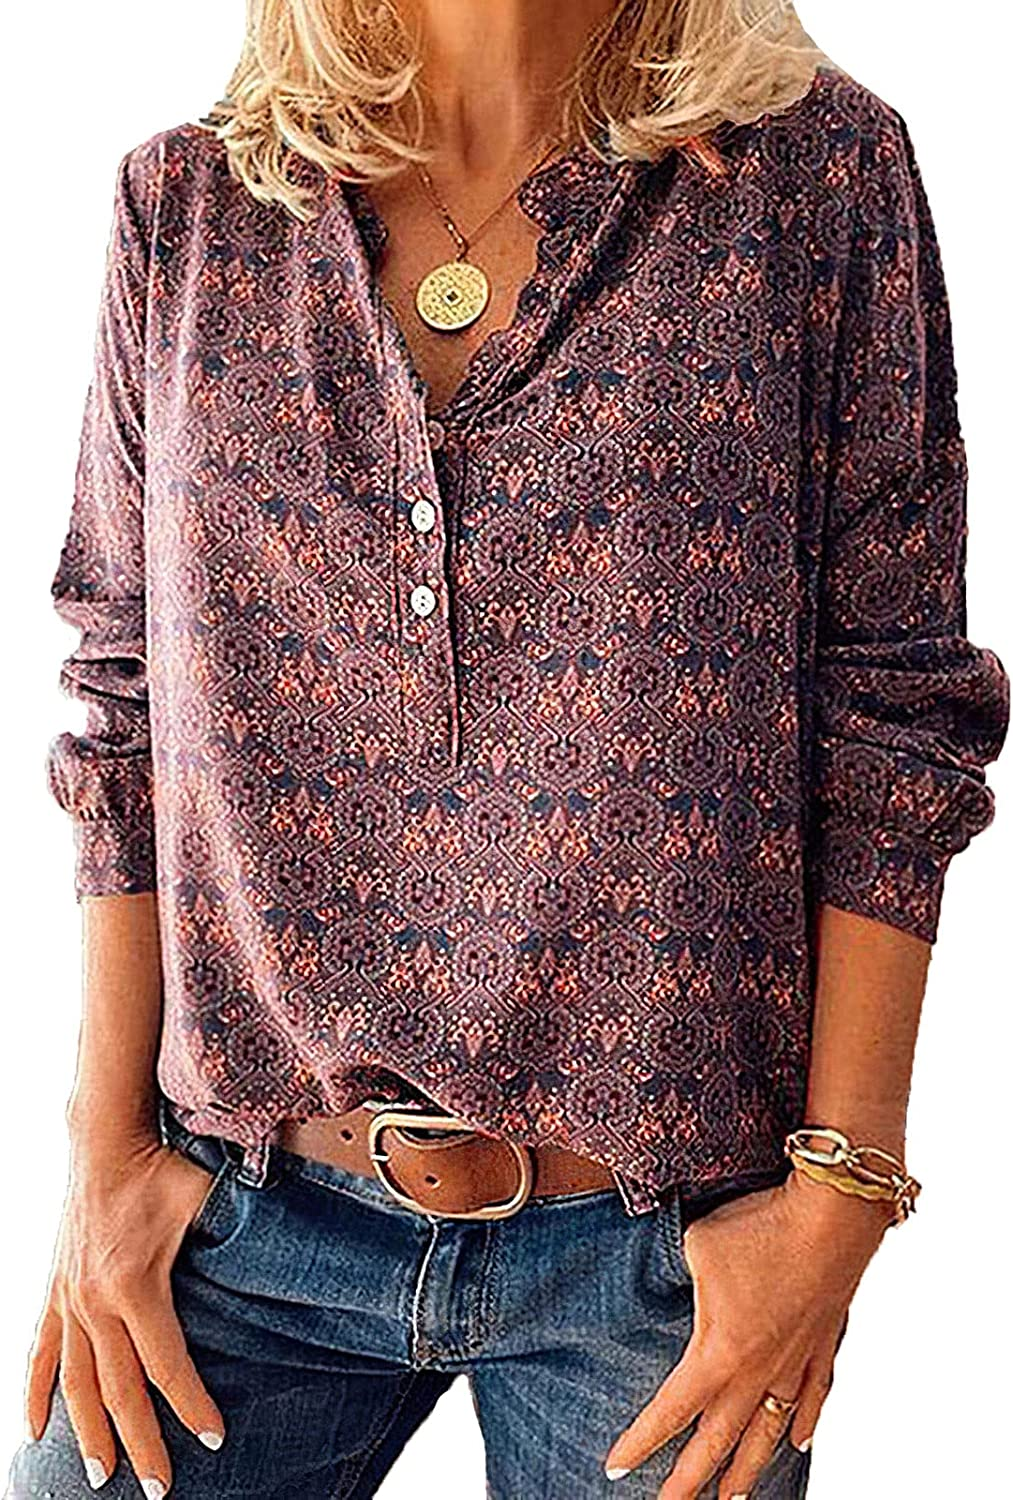 Women's Floral Printed Button Down Long Sleeve Shirts Vintage Casual Loose V Neck Shirts for Women Tops